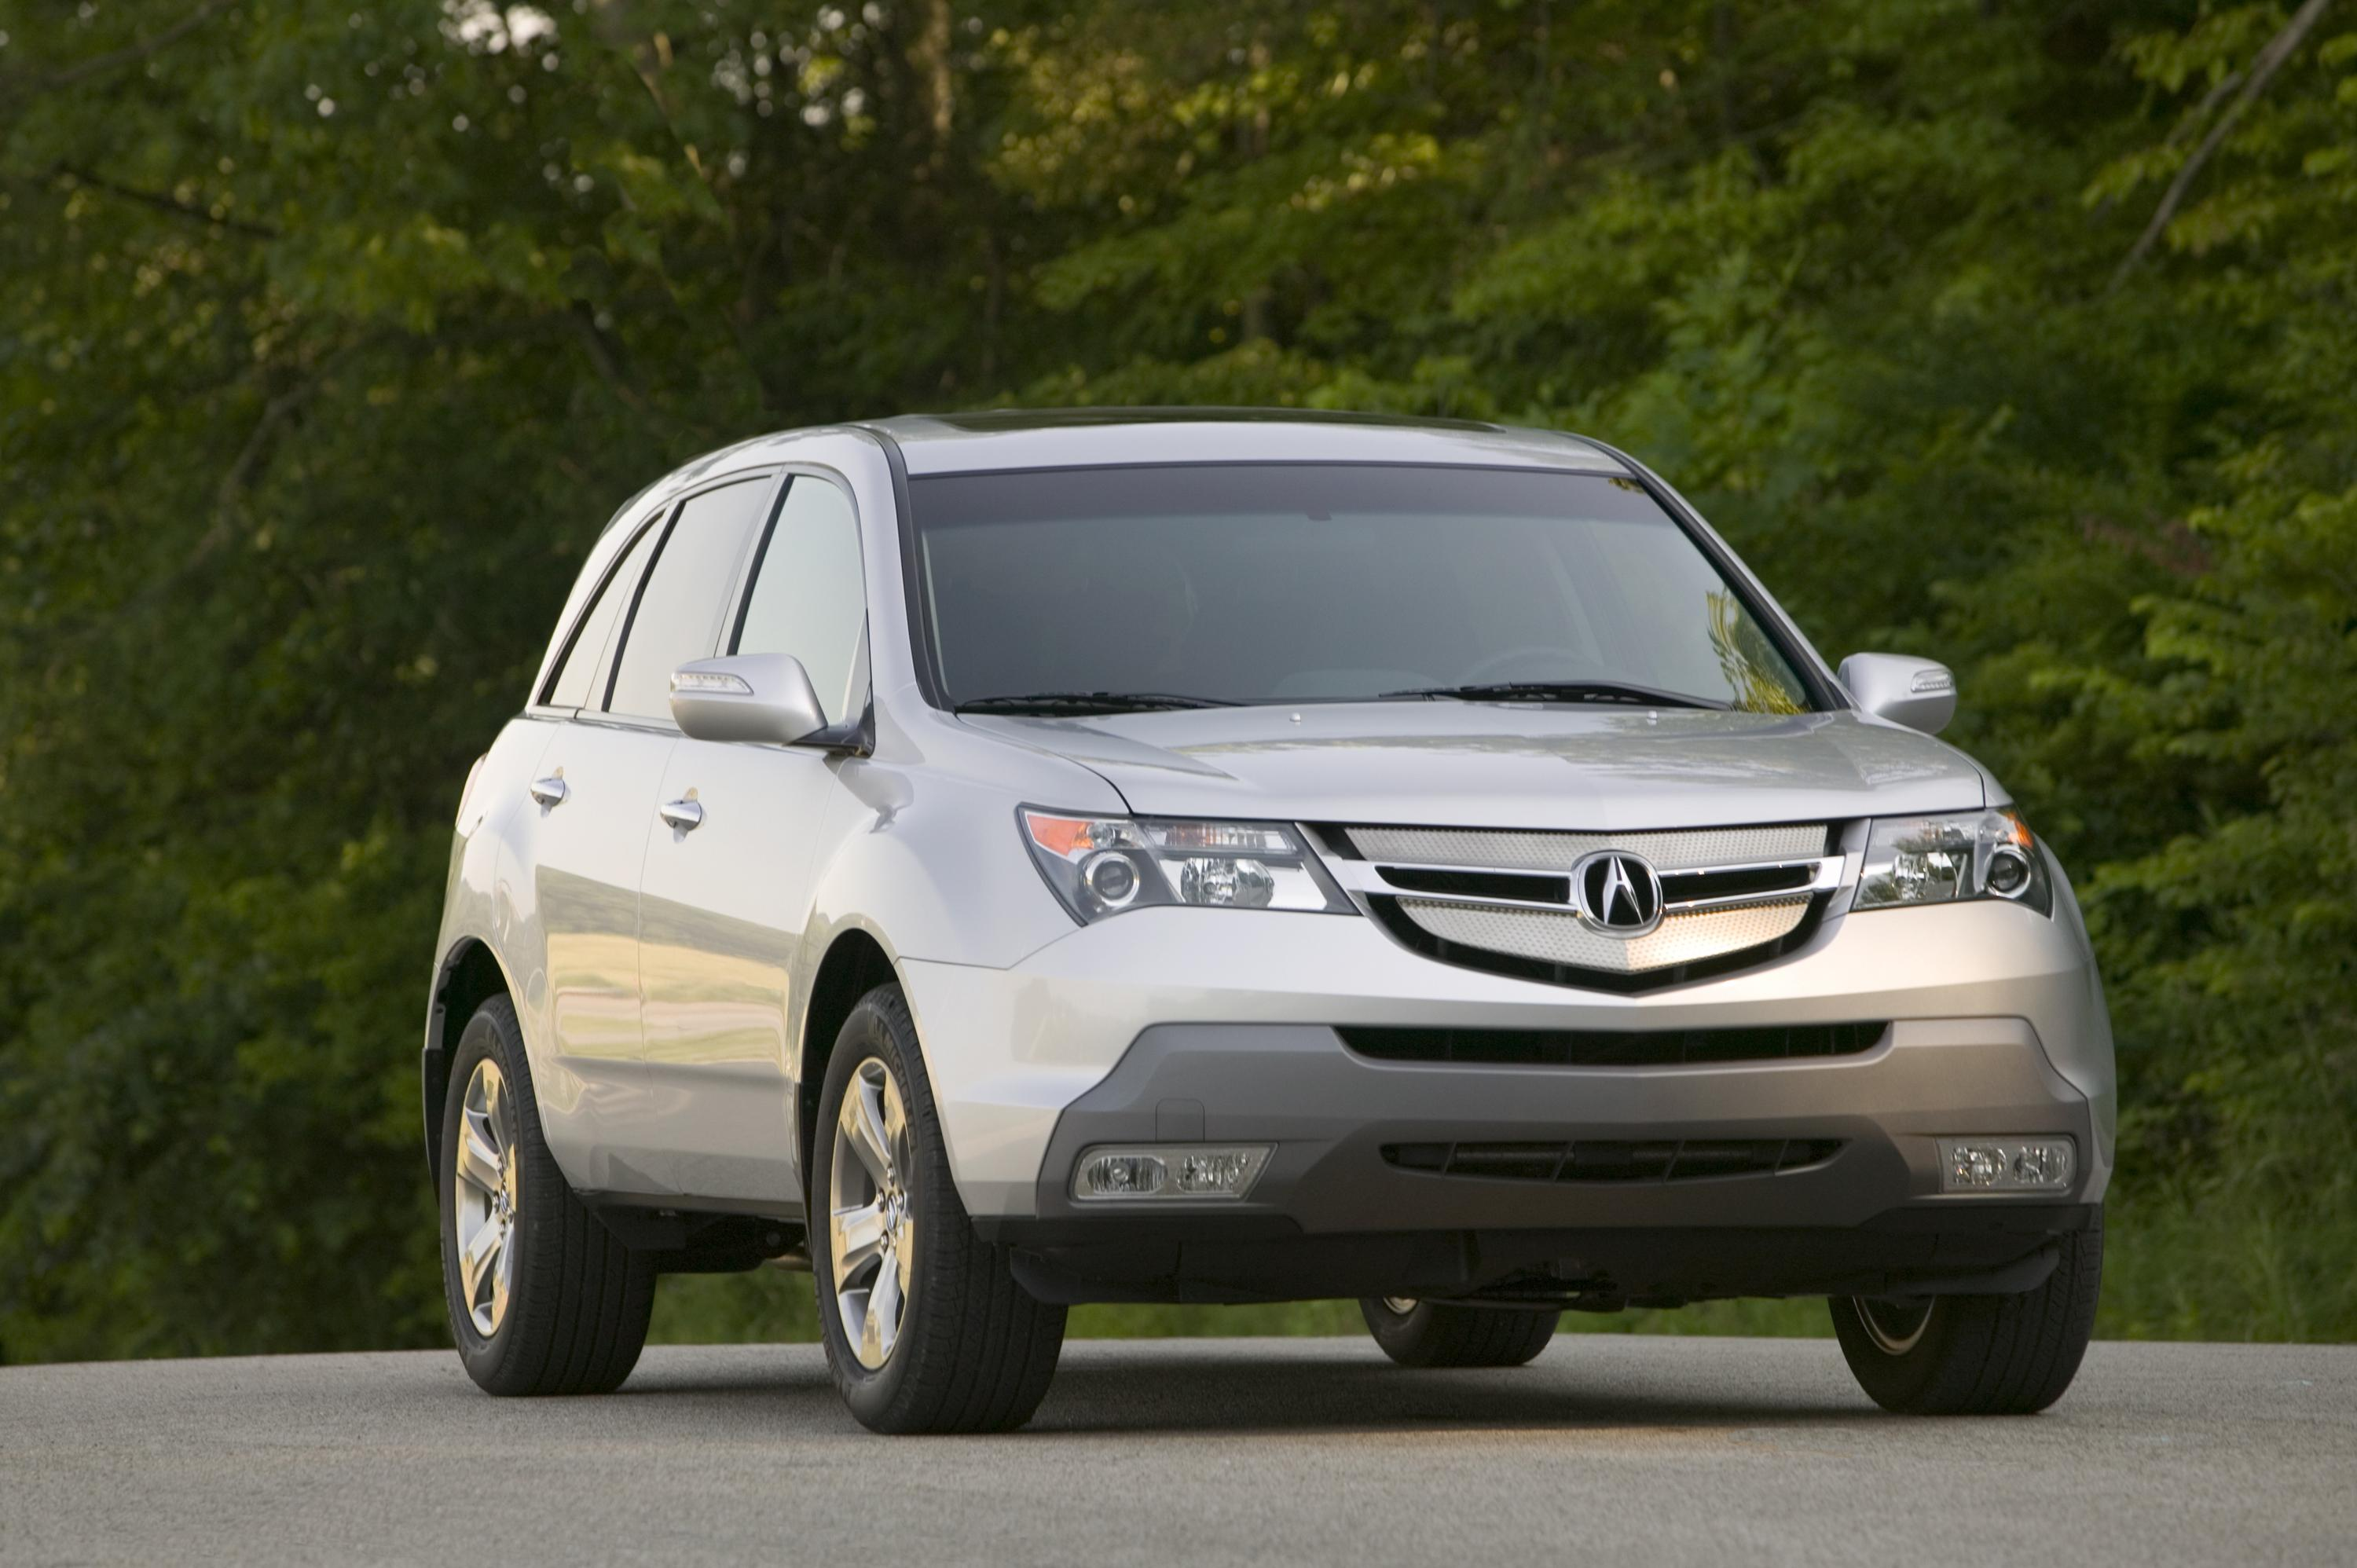 2009 acura mdx pricing announced news gallery top speed. Black Bedroom Furniture Sets. Home Design Ideas